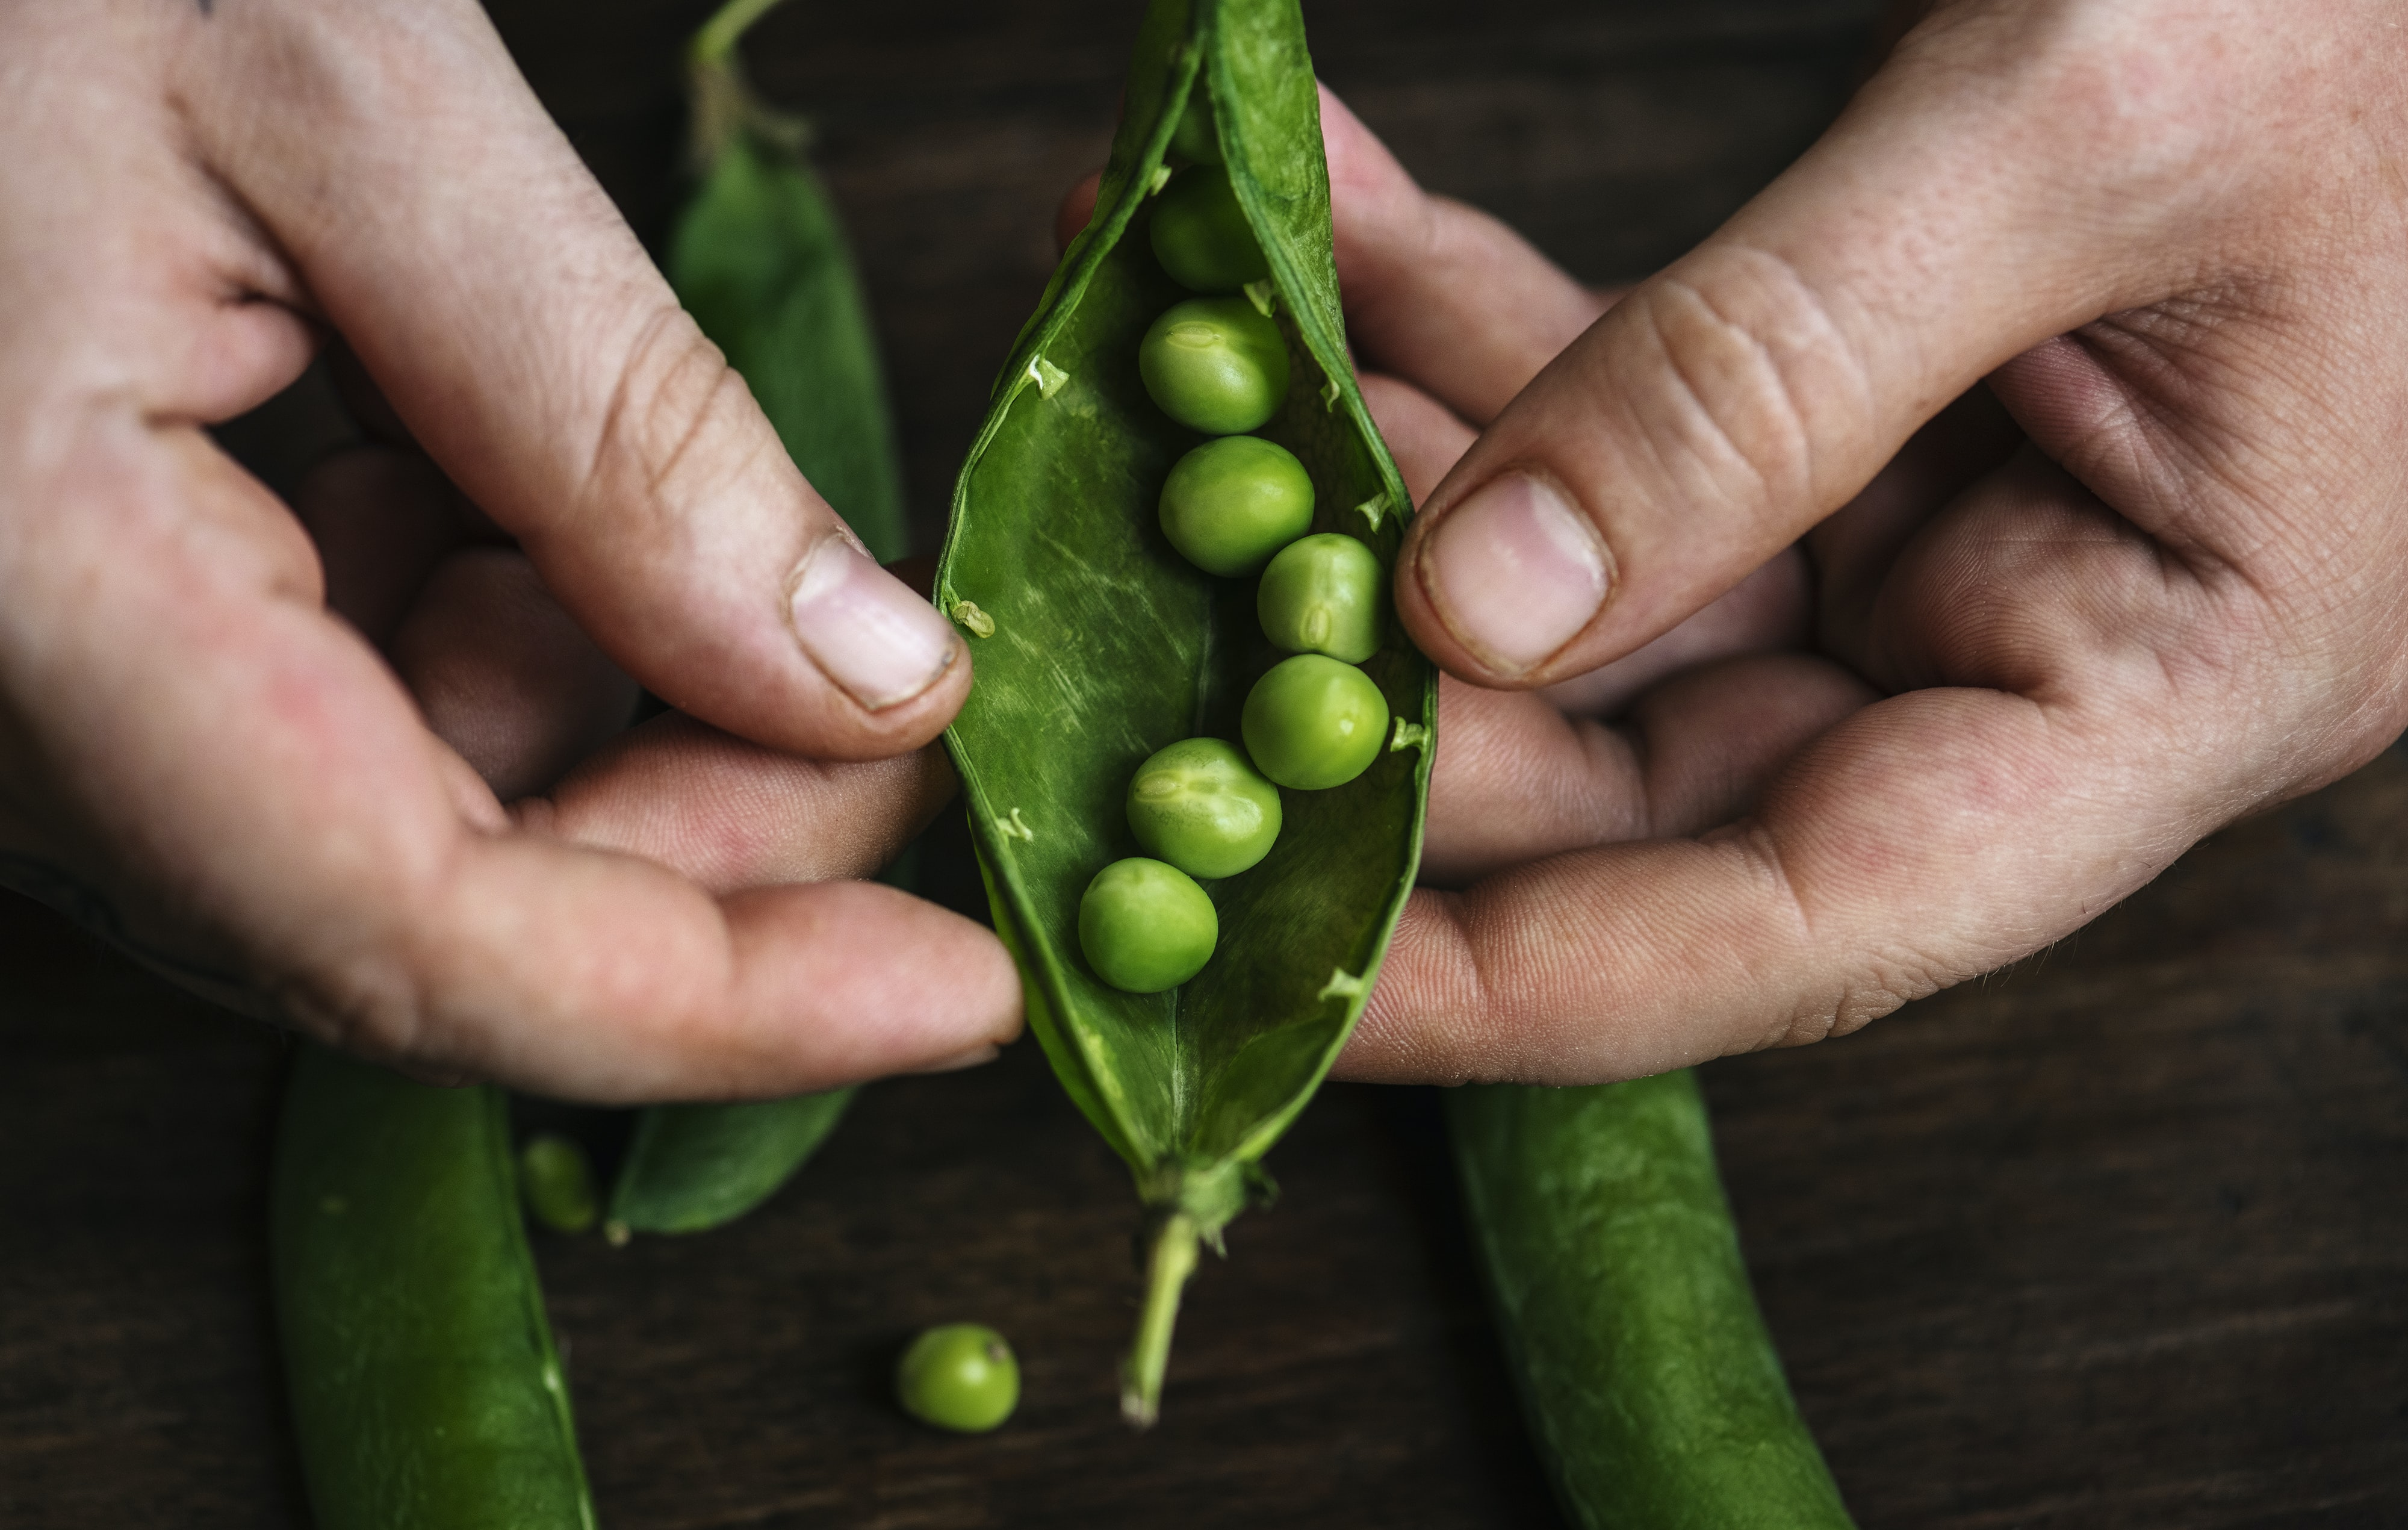 person holding beans